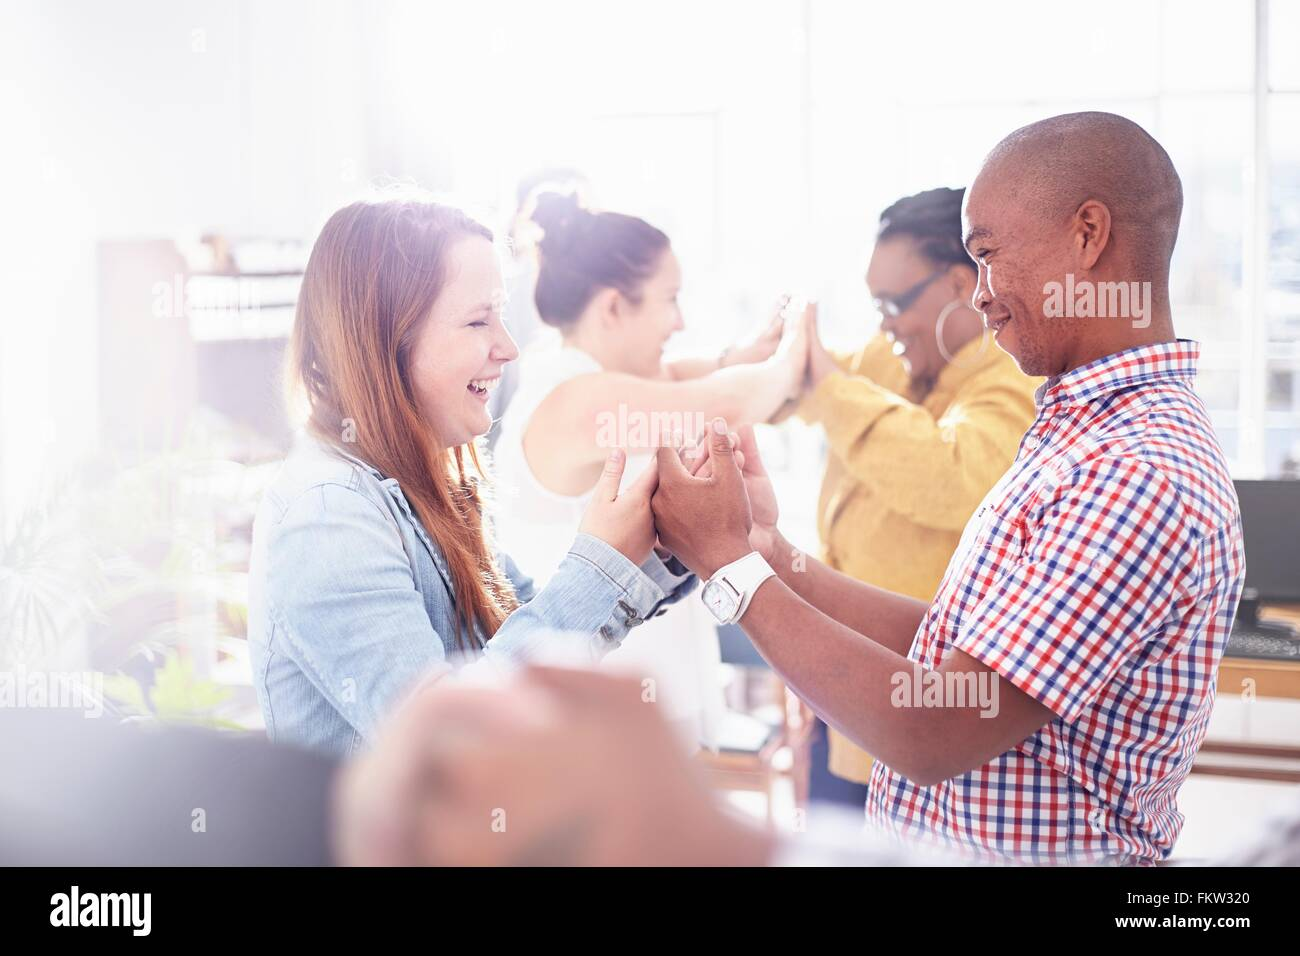 Side view   colleagues in team building task, face to face, hands together smiling - Stock Image